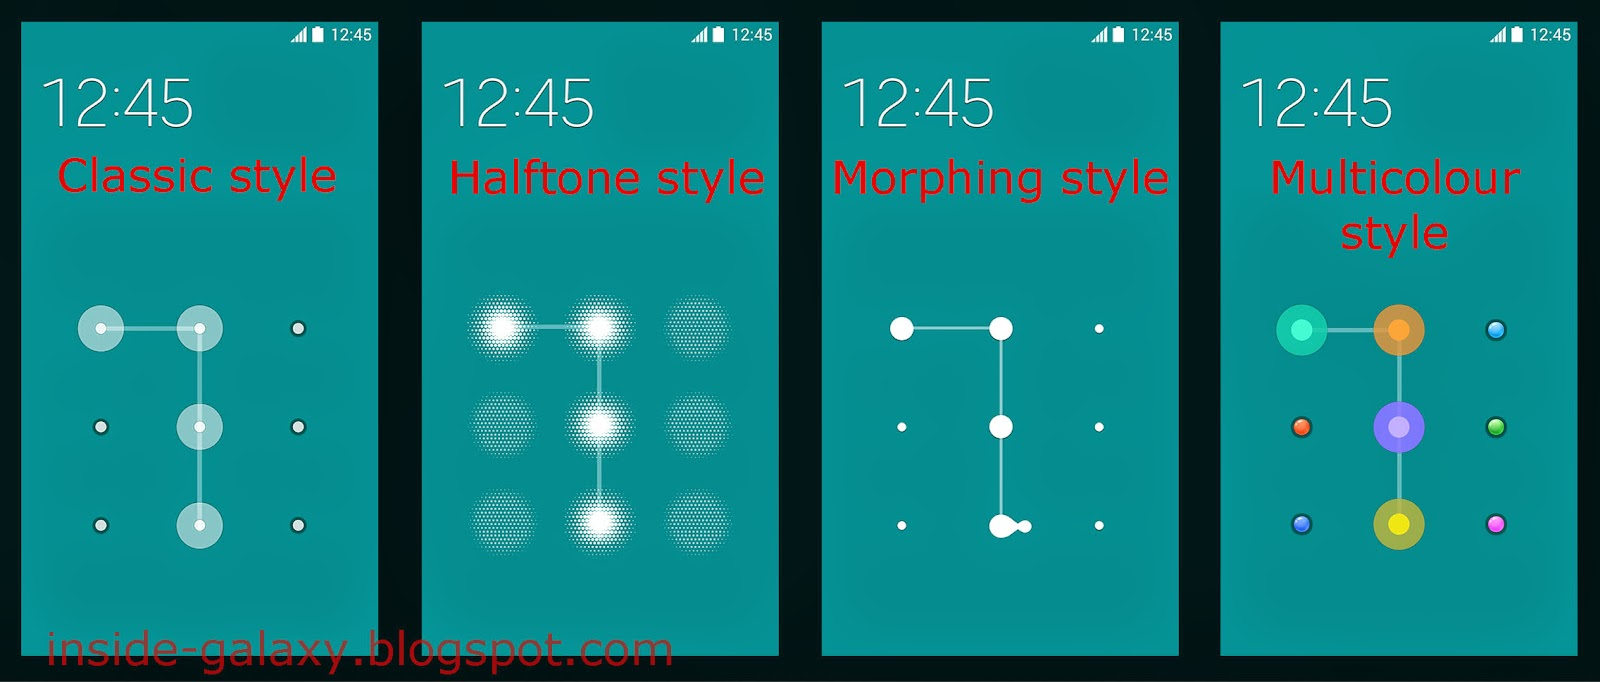 Samsung Galaxy S5: How to Change Pattern Grid Style on